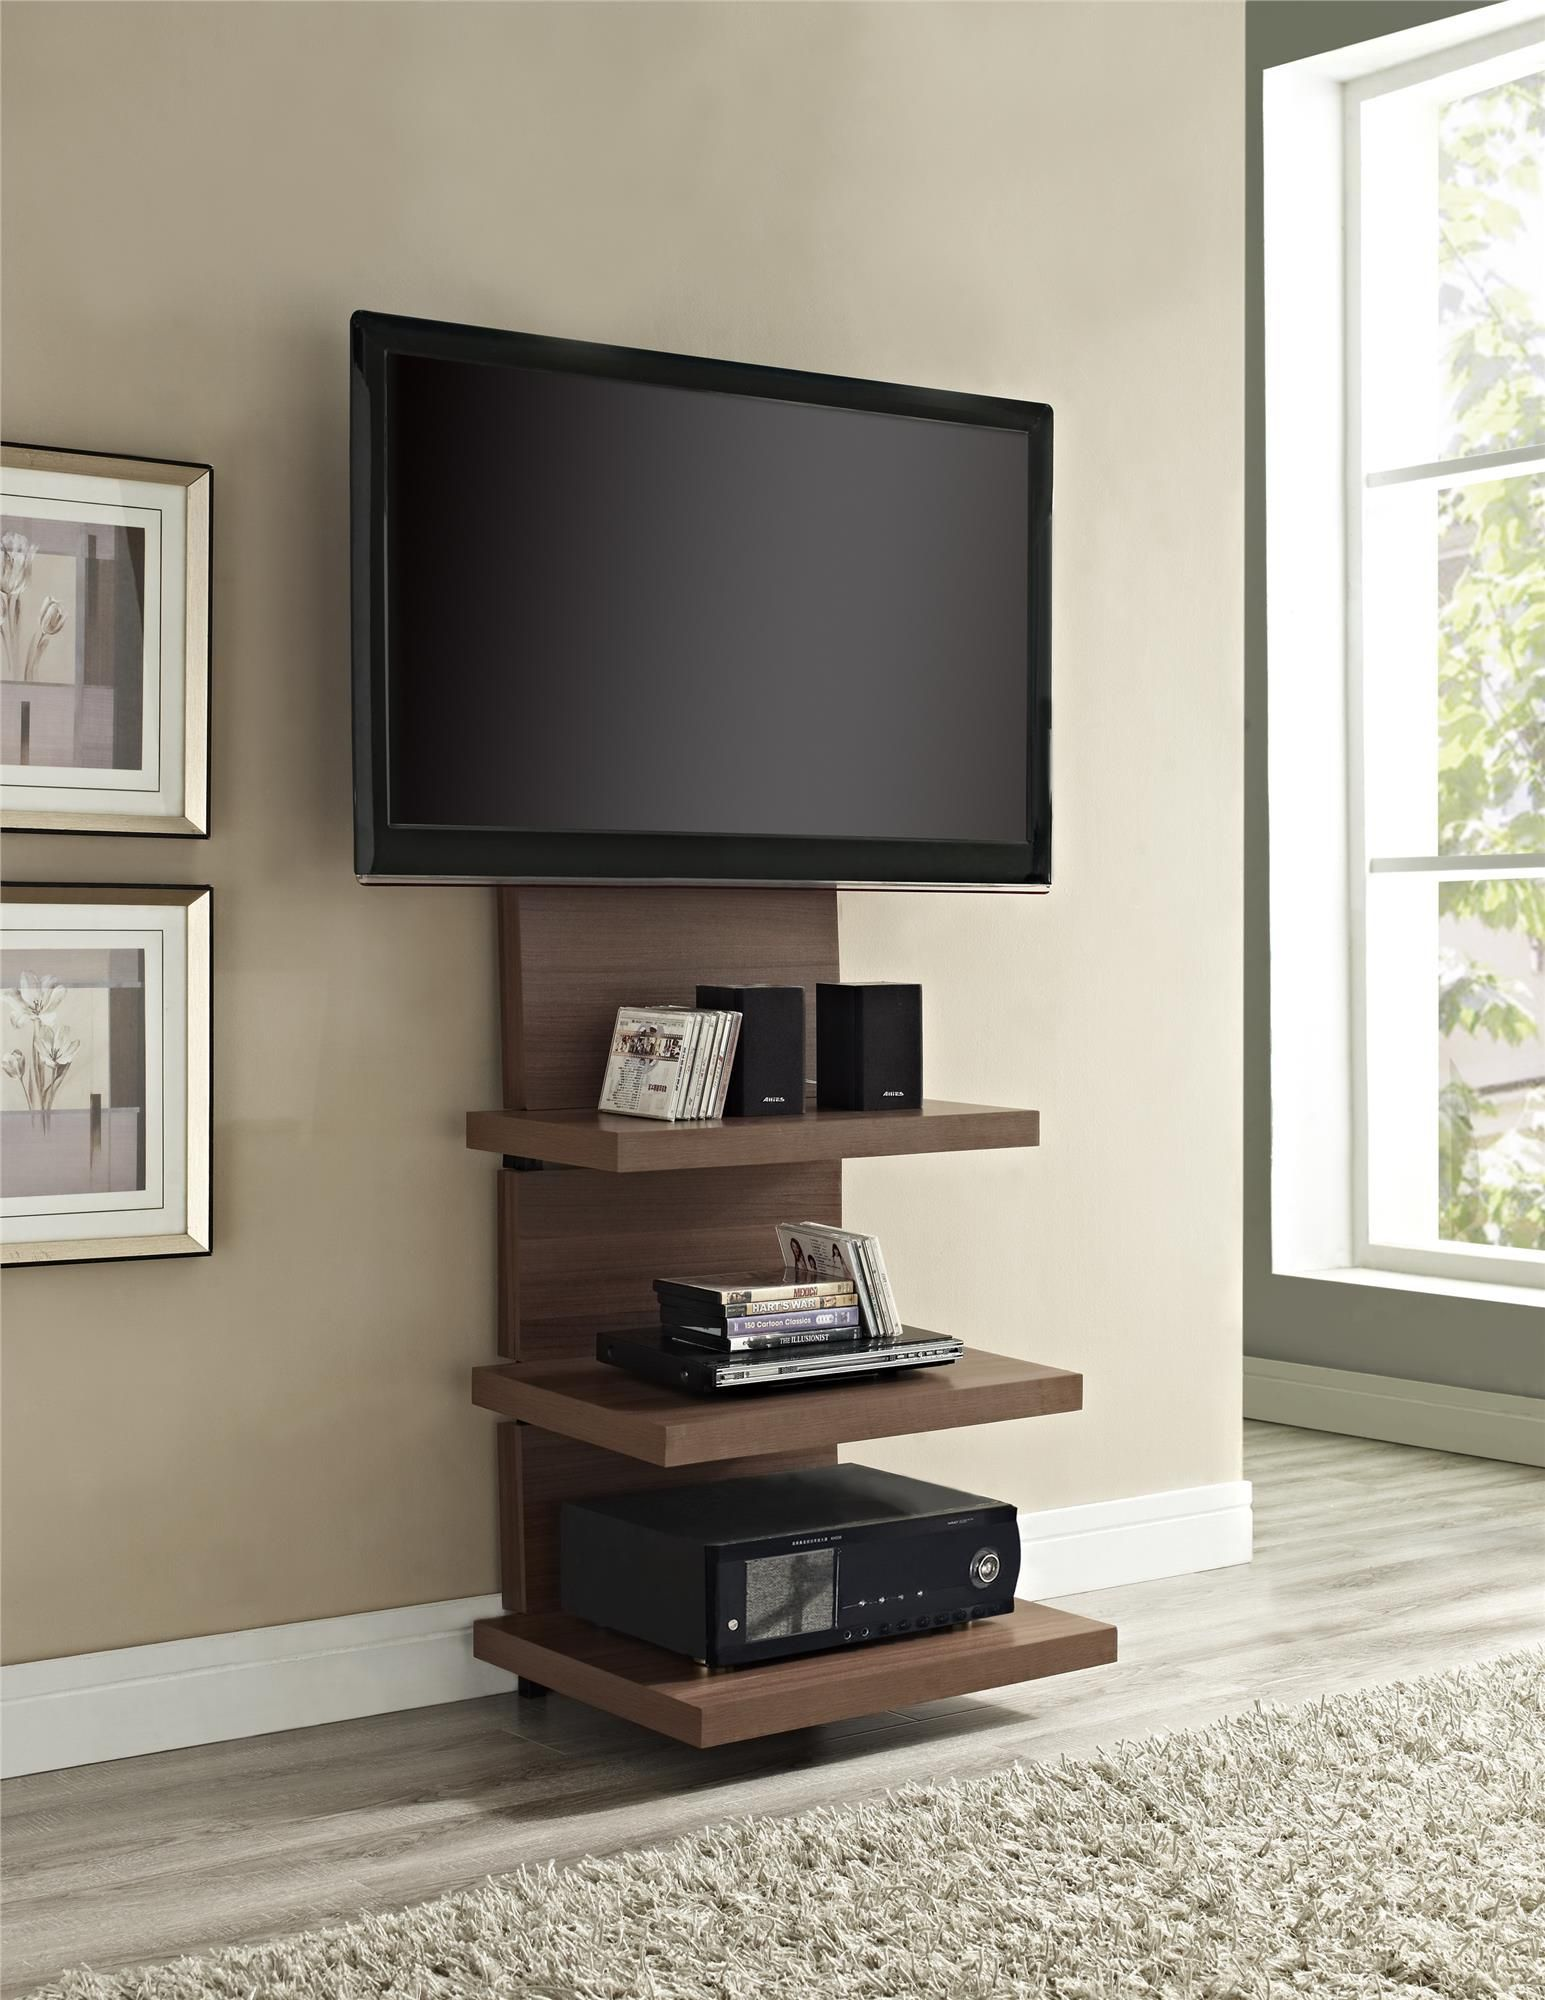 Furniture, Cool Custom Modern Vertical Wood TV Stands With Floating ...